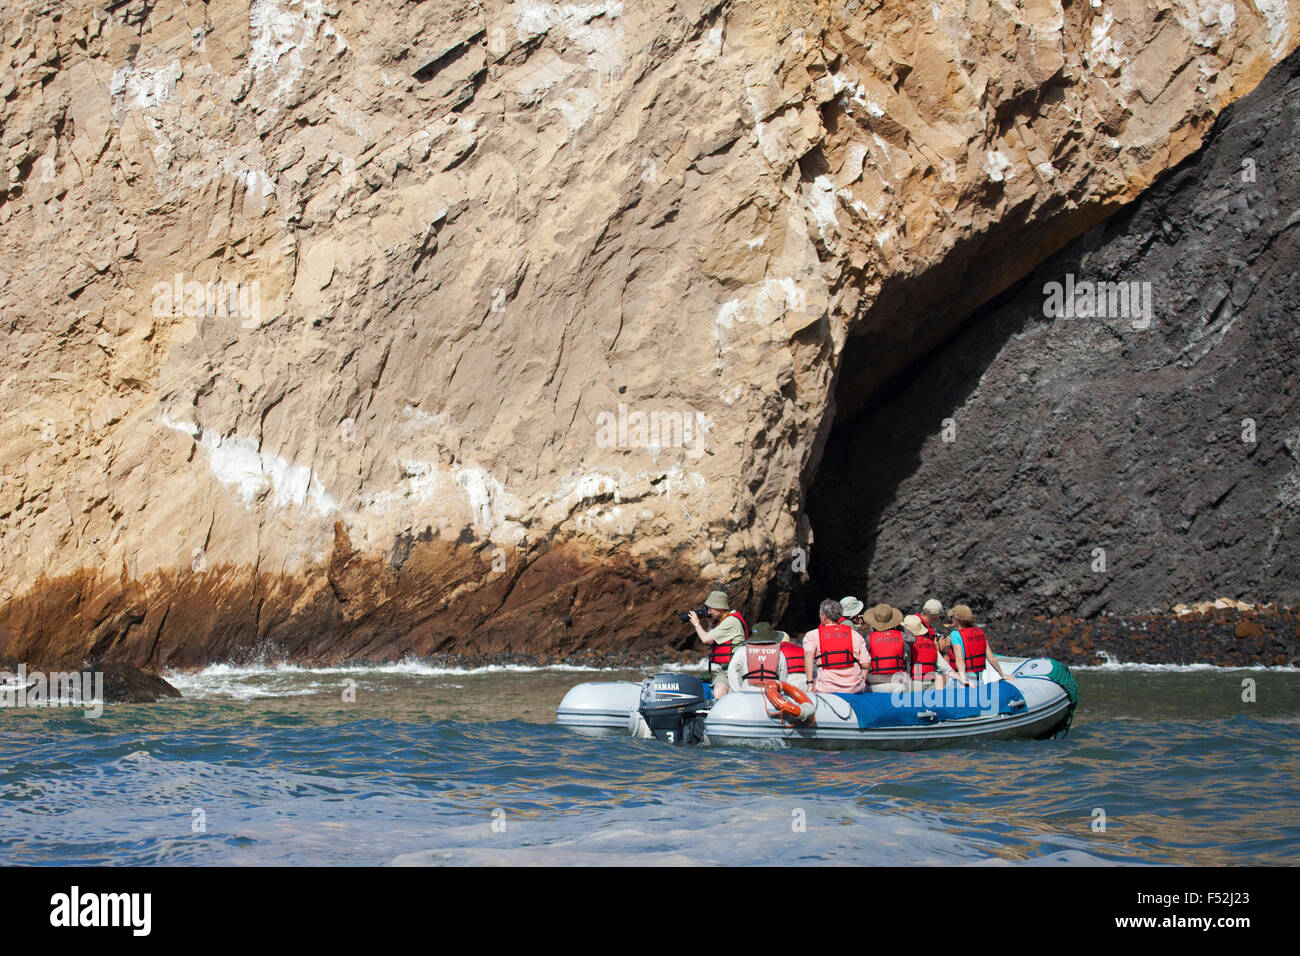 Tourists in dinghy viewing geological contact between tuff (compacted volcanic ash) and the darker scoria (cinder) - Stock Image